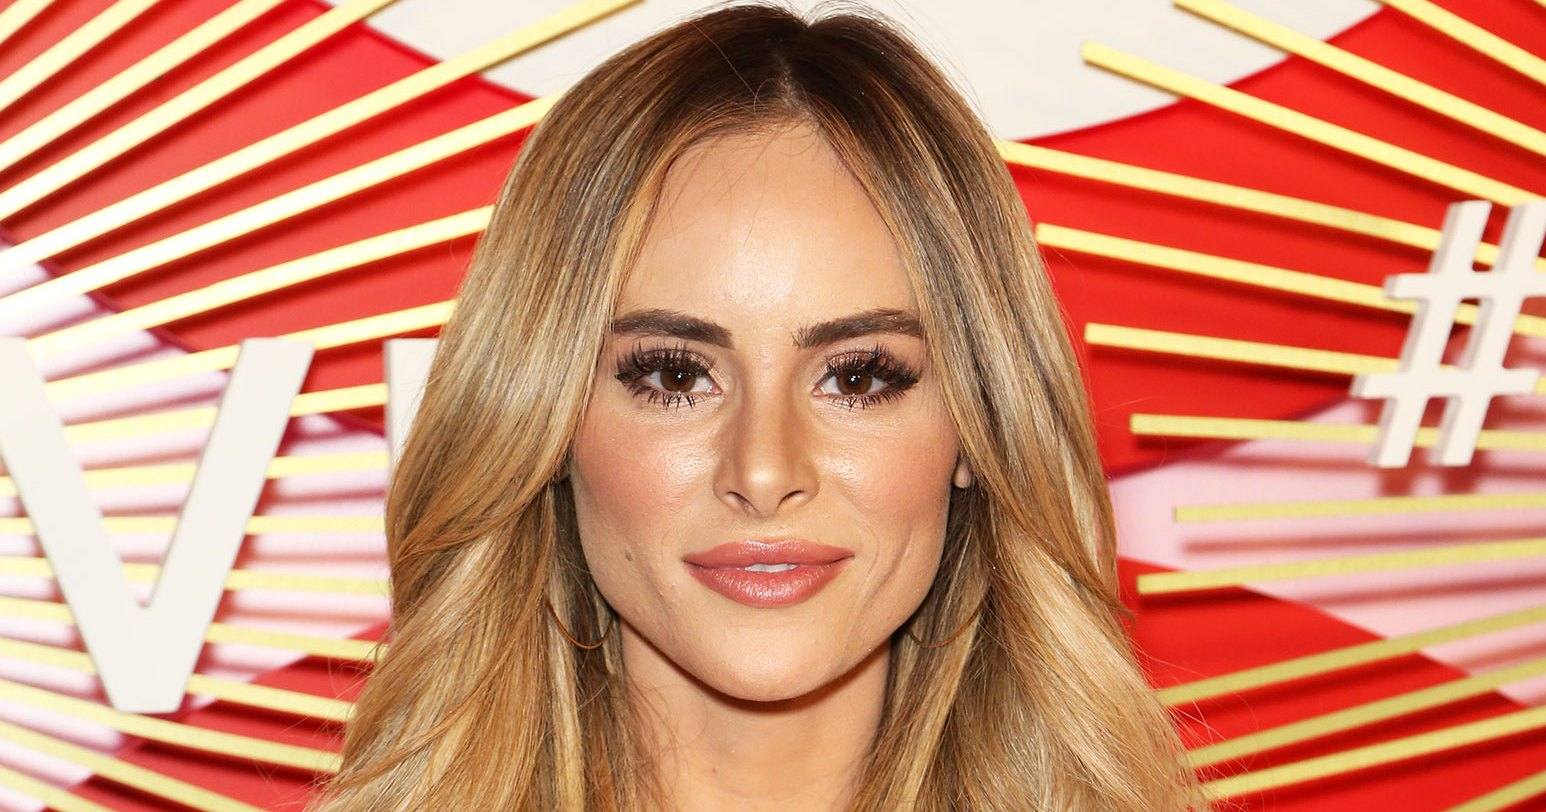 Amanda Stanton Reveals Why Her 6-Year-Old Has an iPhone